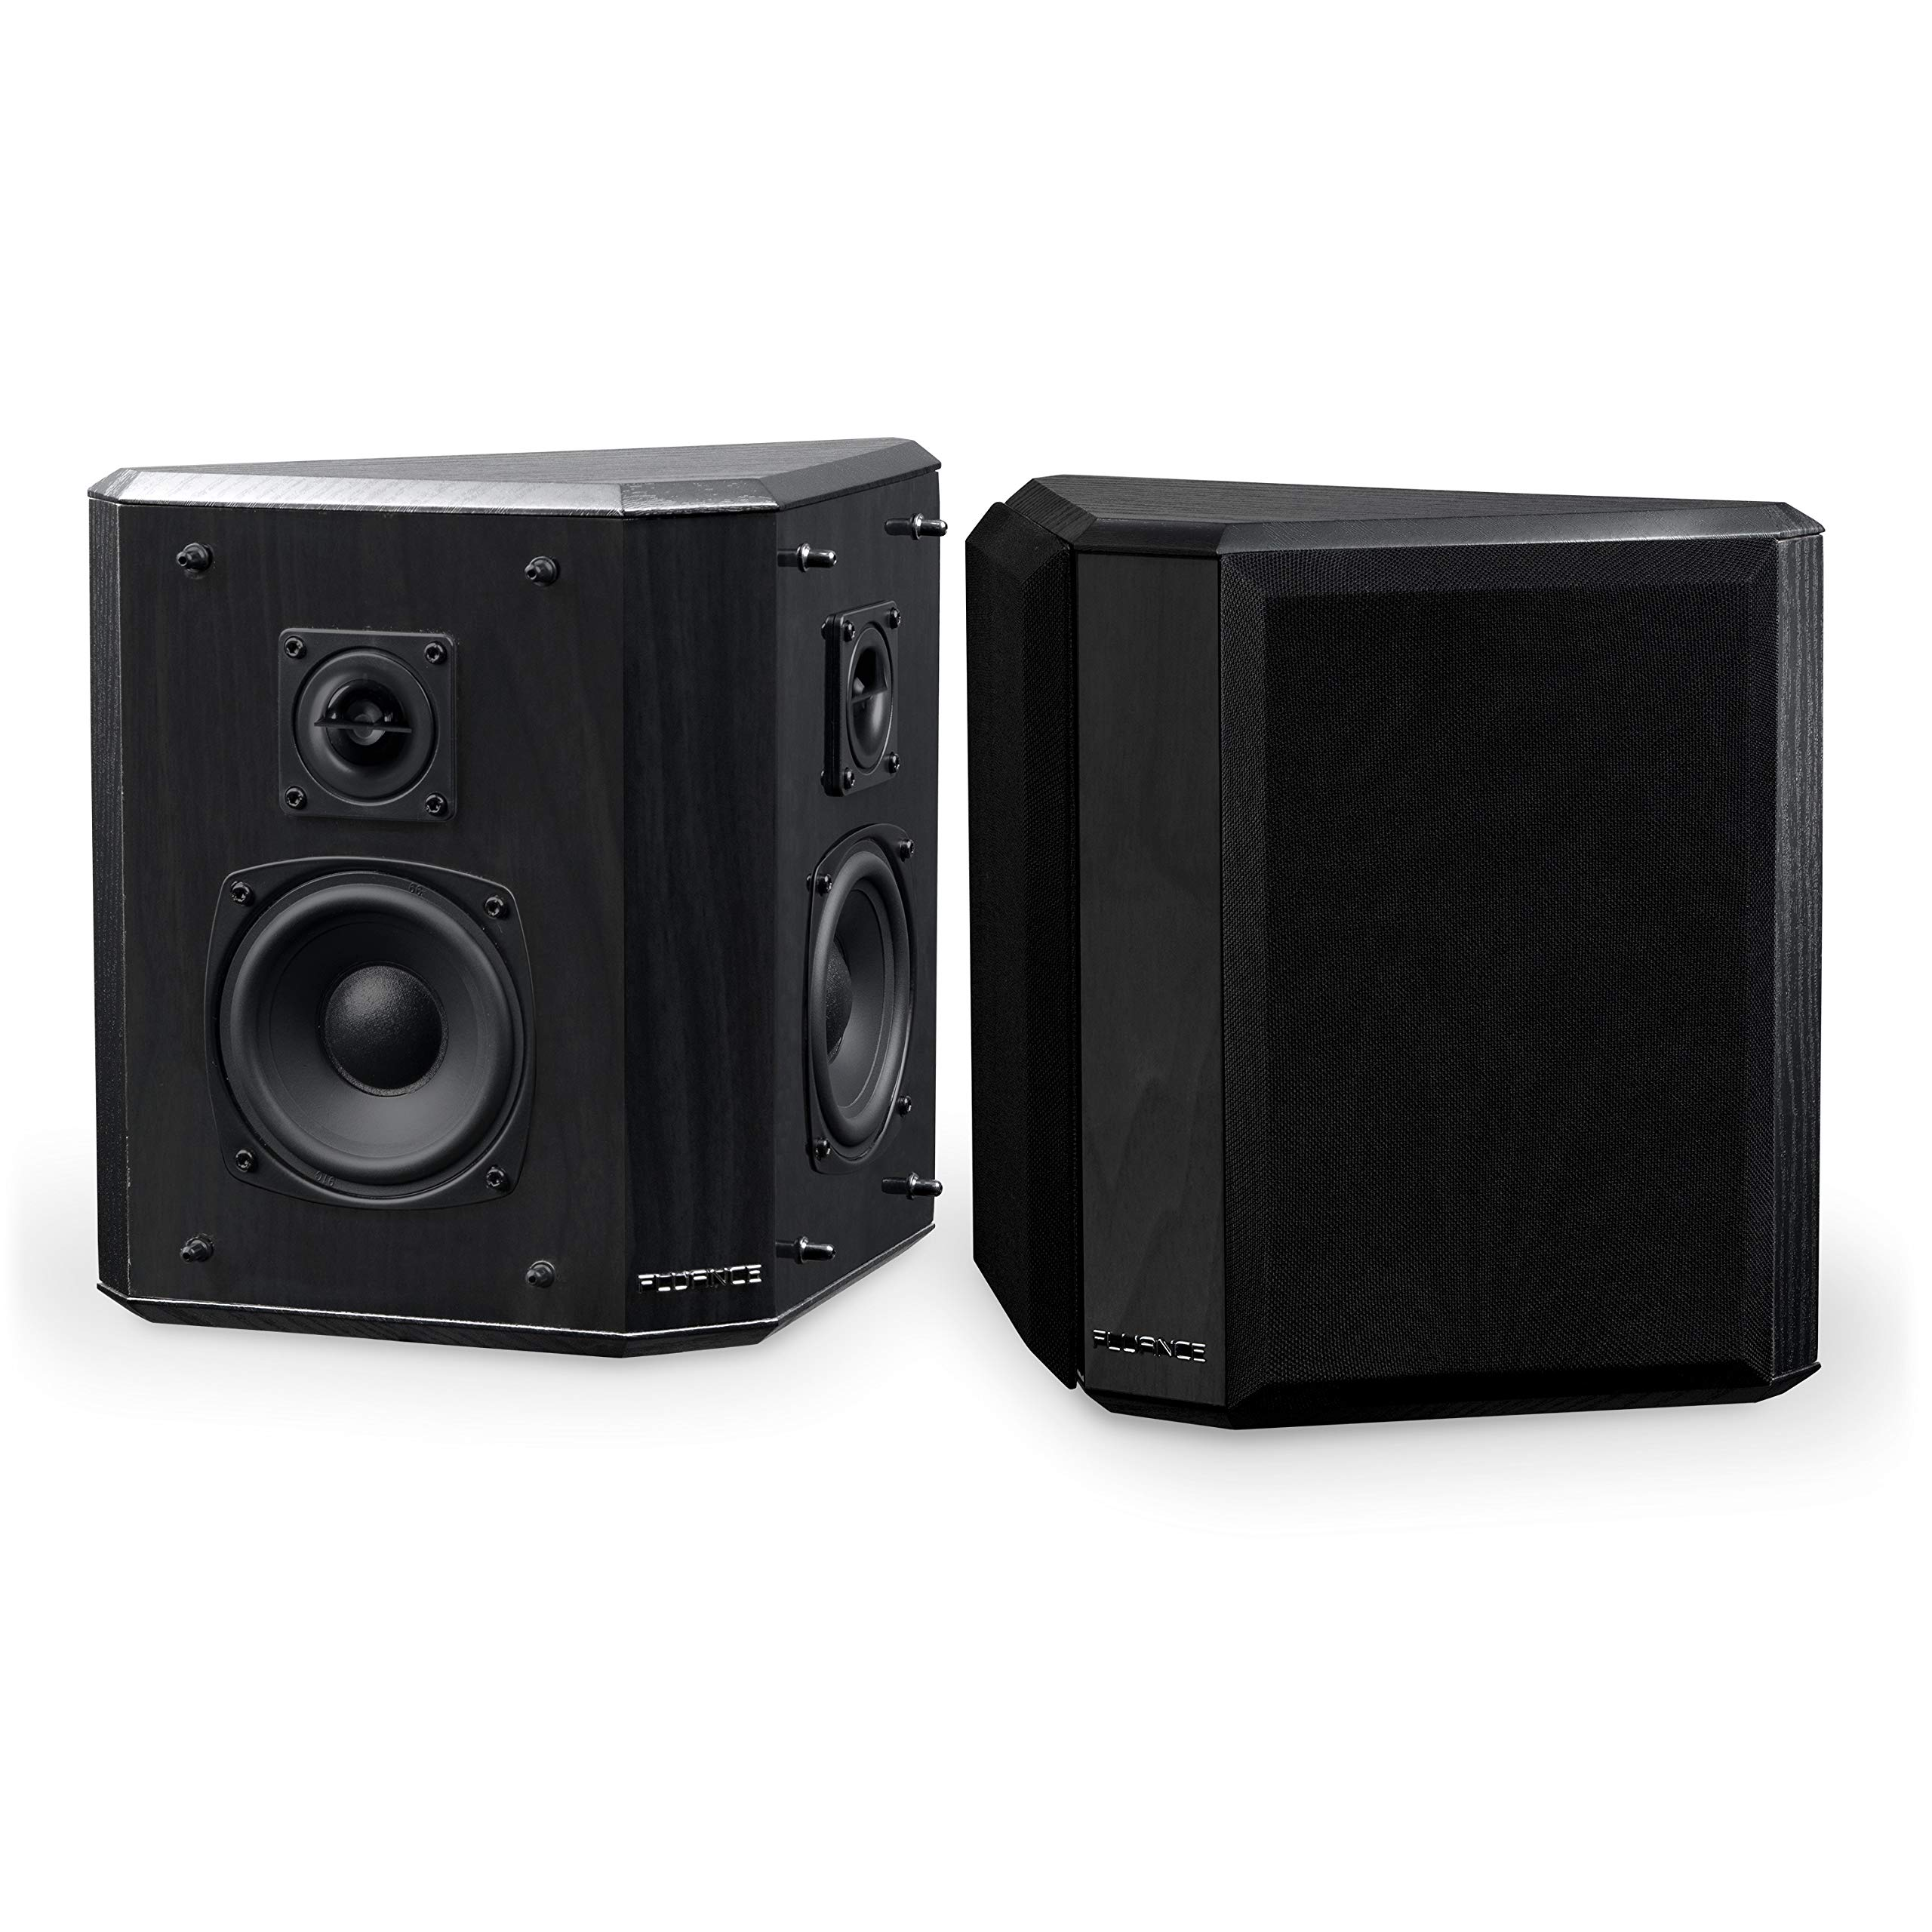 Fluance Elite High Definition 2-Way Bipolar Surround Speakers for Wide Dispersion Surround Sound in Home Theater Systems - Black Ash/Pair (SXBP2)